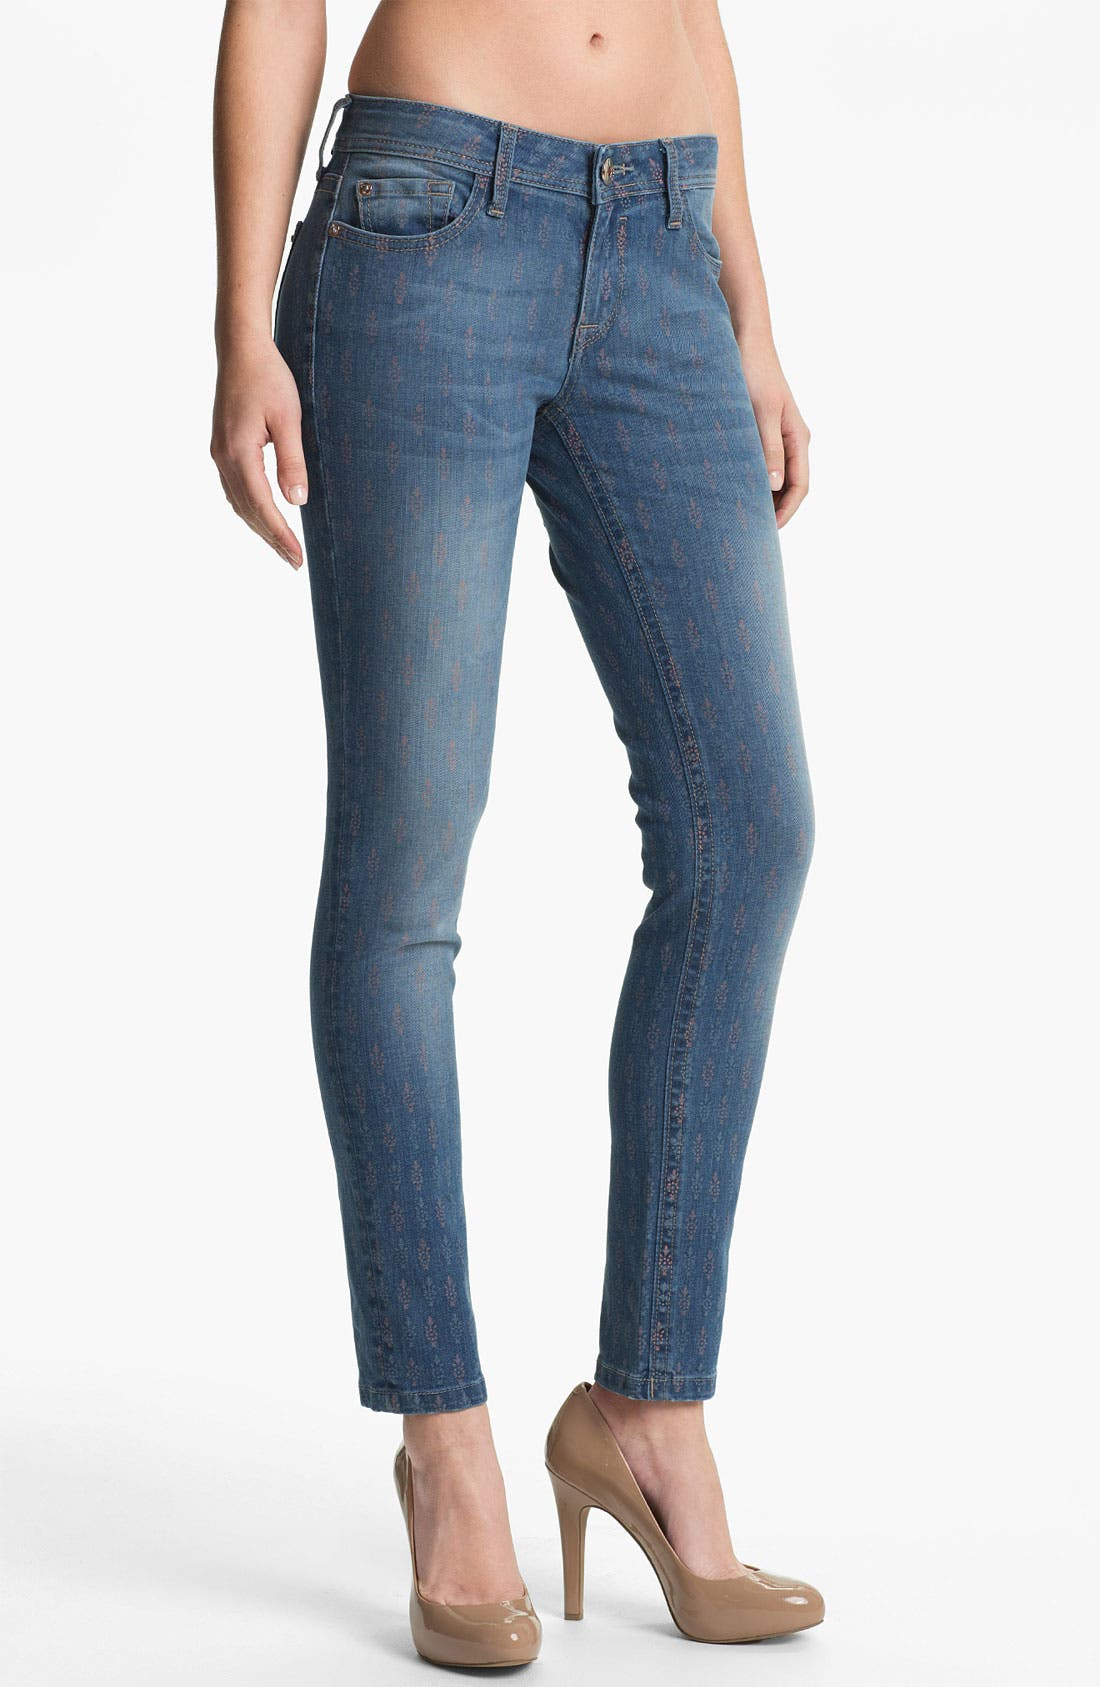 Main Image - DL1961 'Amanda' X-Fit Stretch Print Denim Skinny Jeans (Greenville)